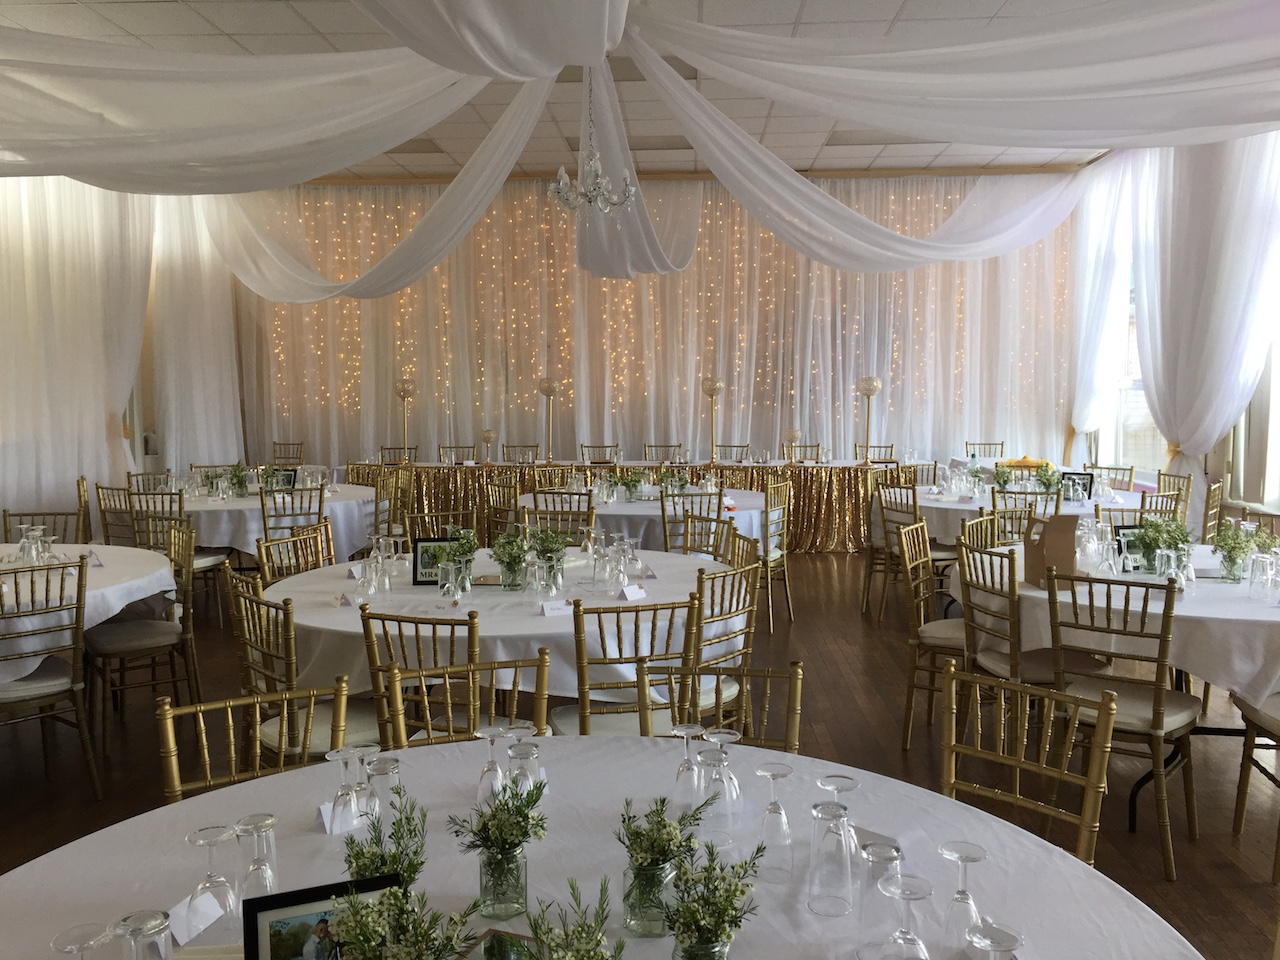 Fairy lights backdrop with flowing ceiling drapes at Central London Golf centre